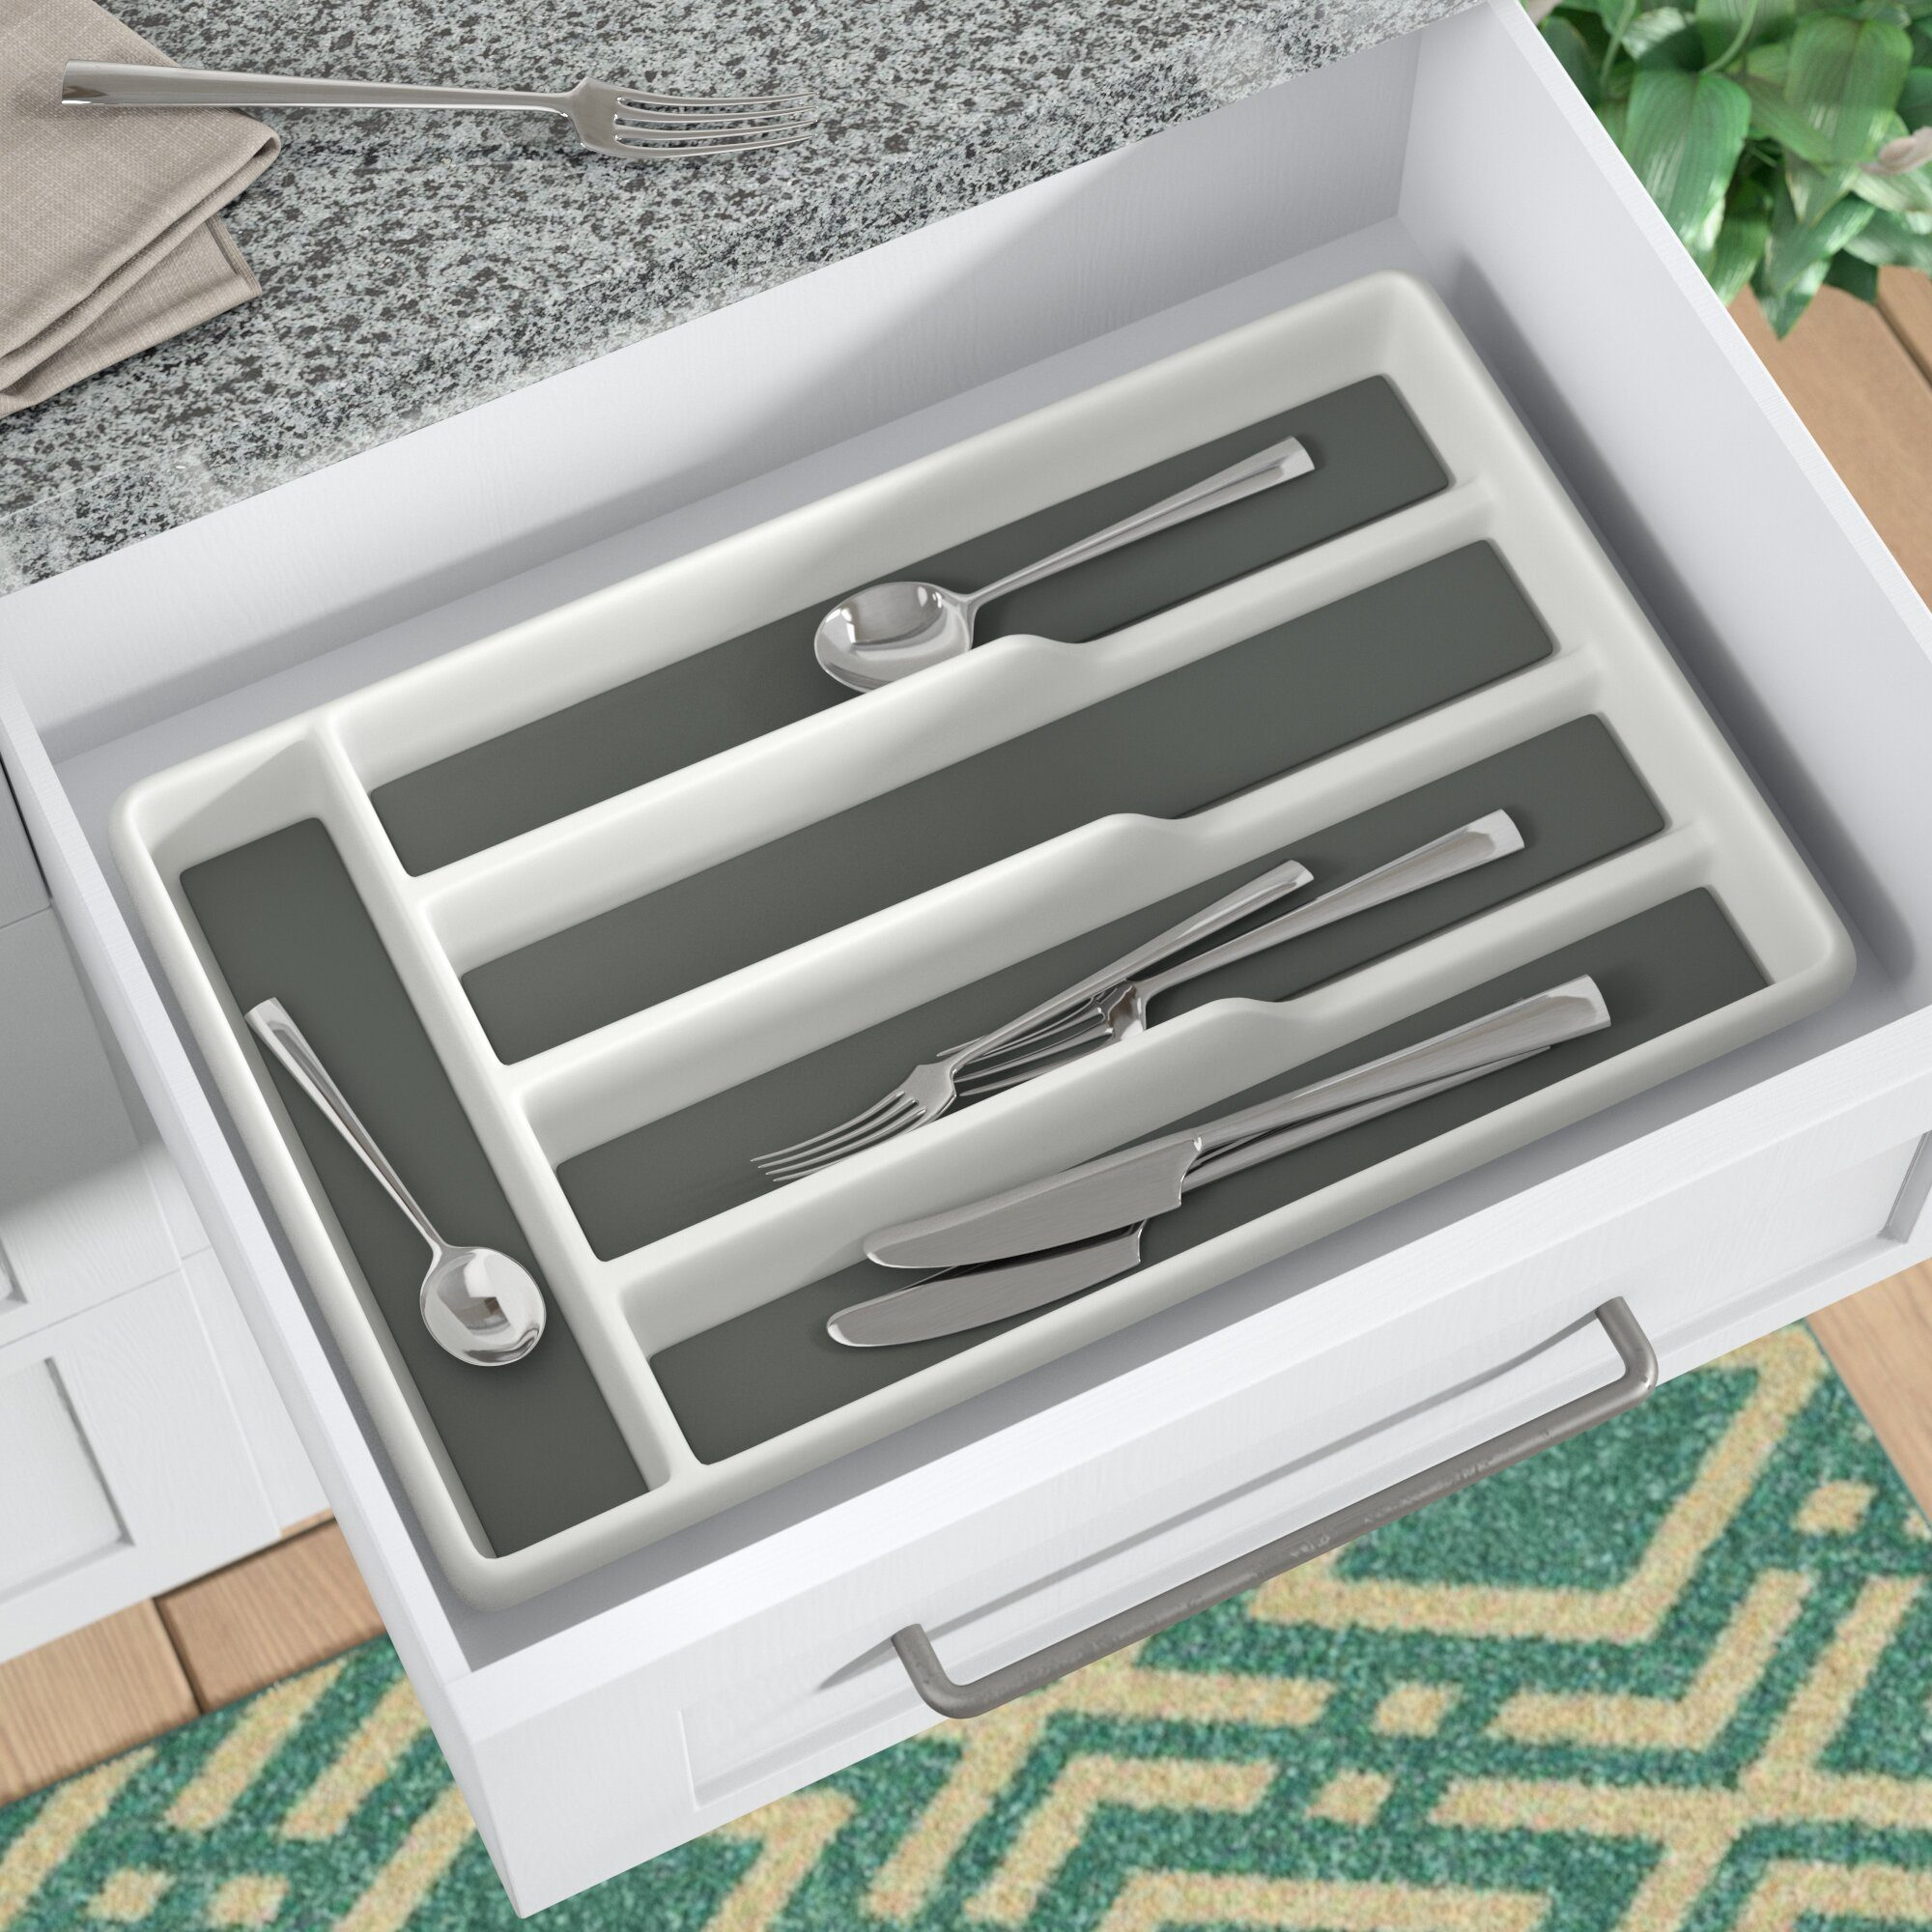 silverware organizer 1+piece+drawer+organizer+set